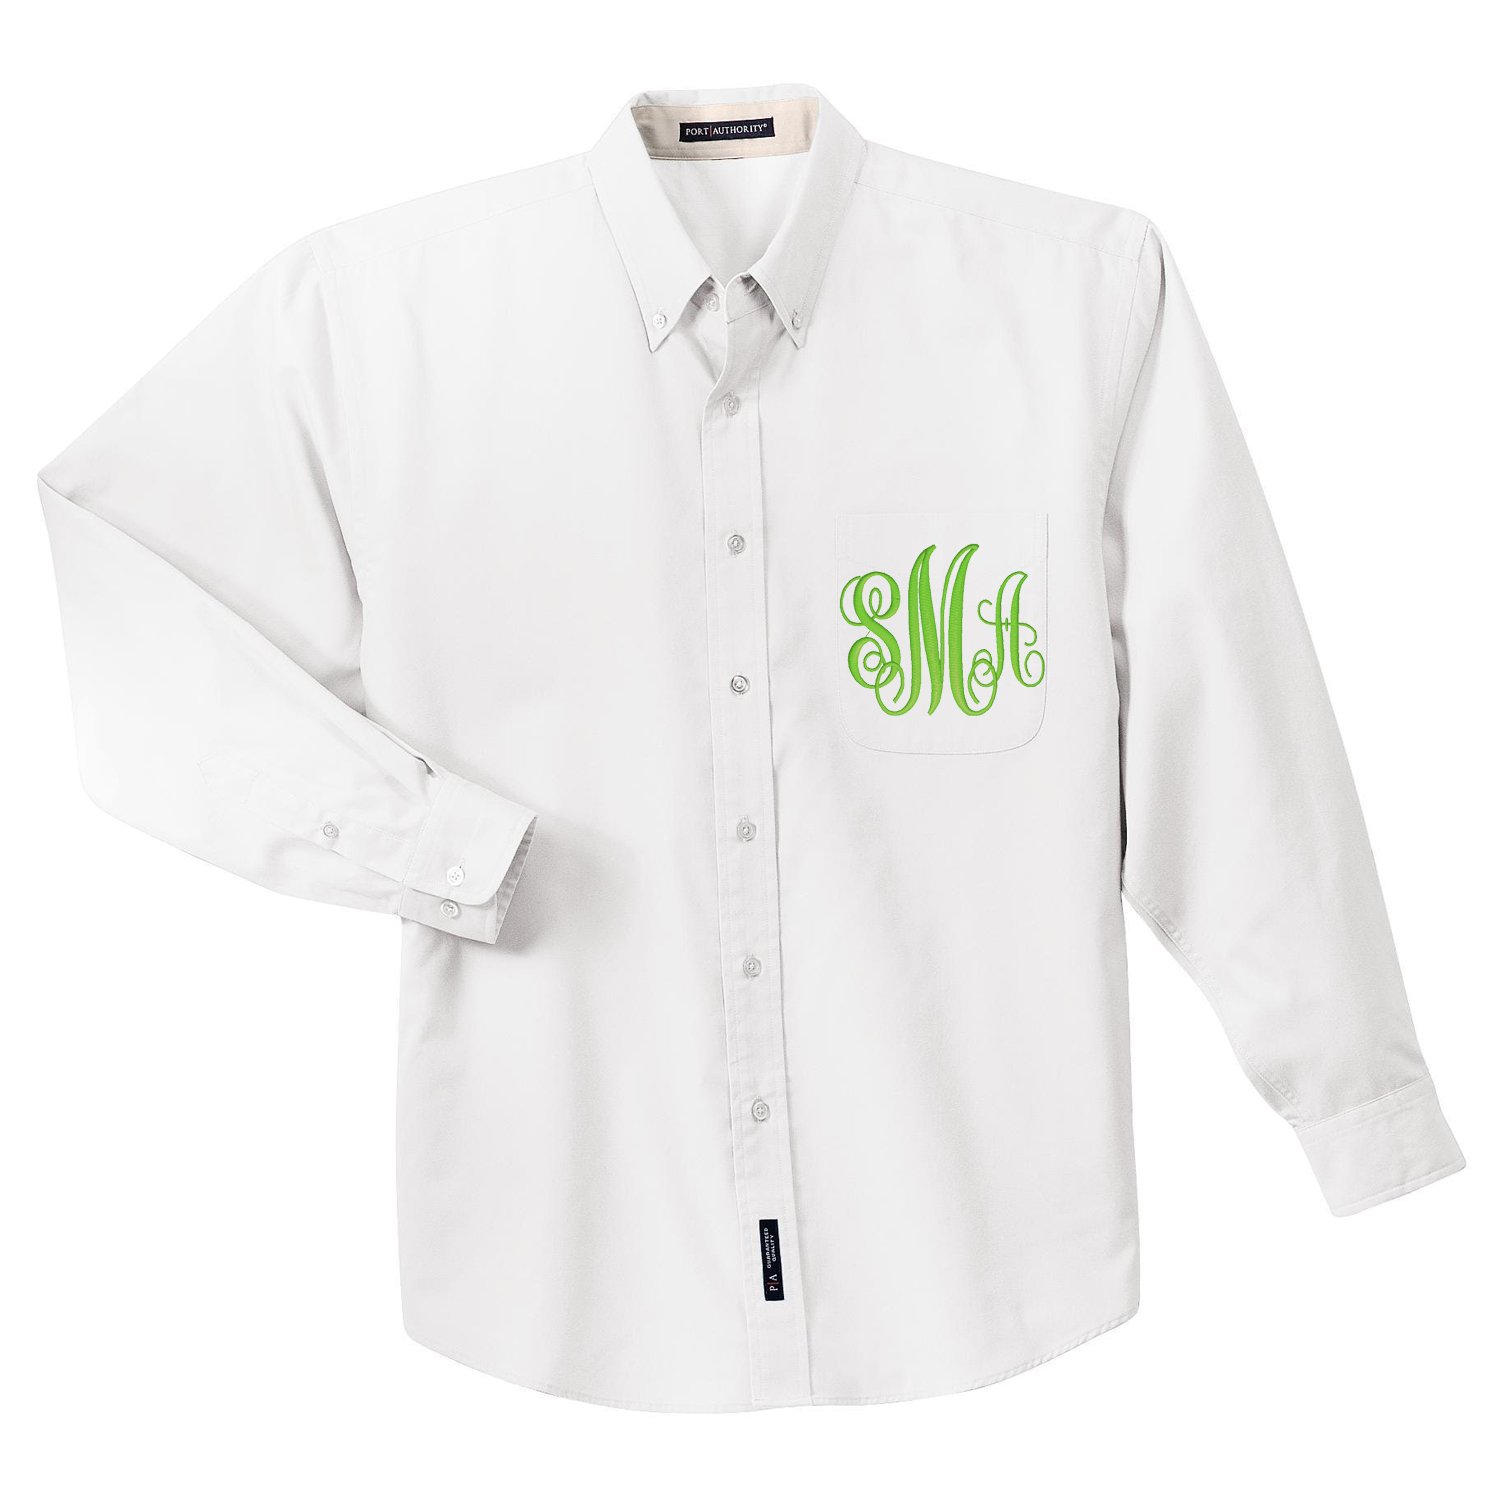 Monogrammed Button Down Shirts For Bridal Party Rldm